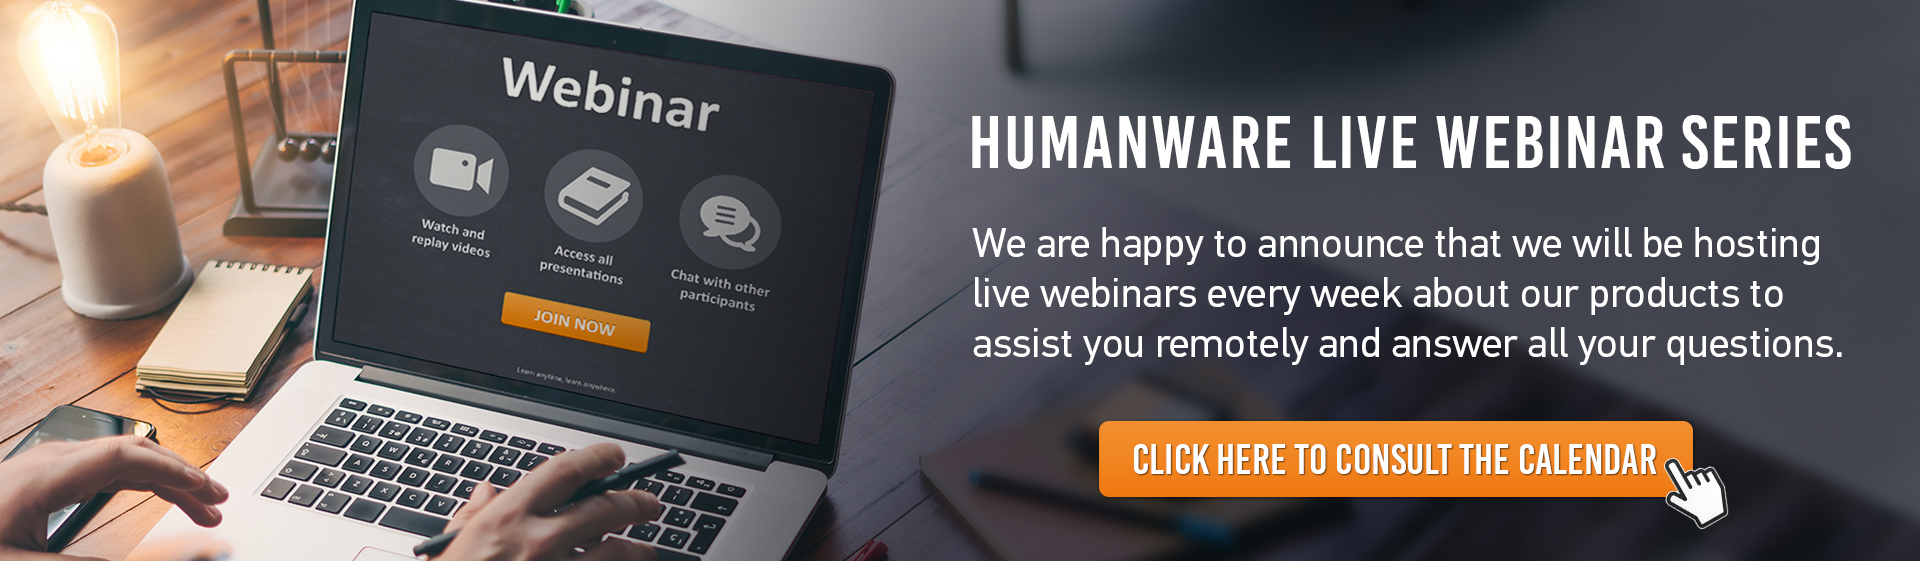 Click here to discover HumanWare Live Webinar Series.